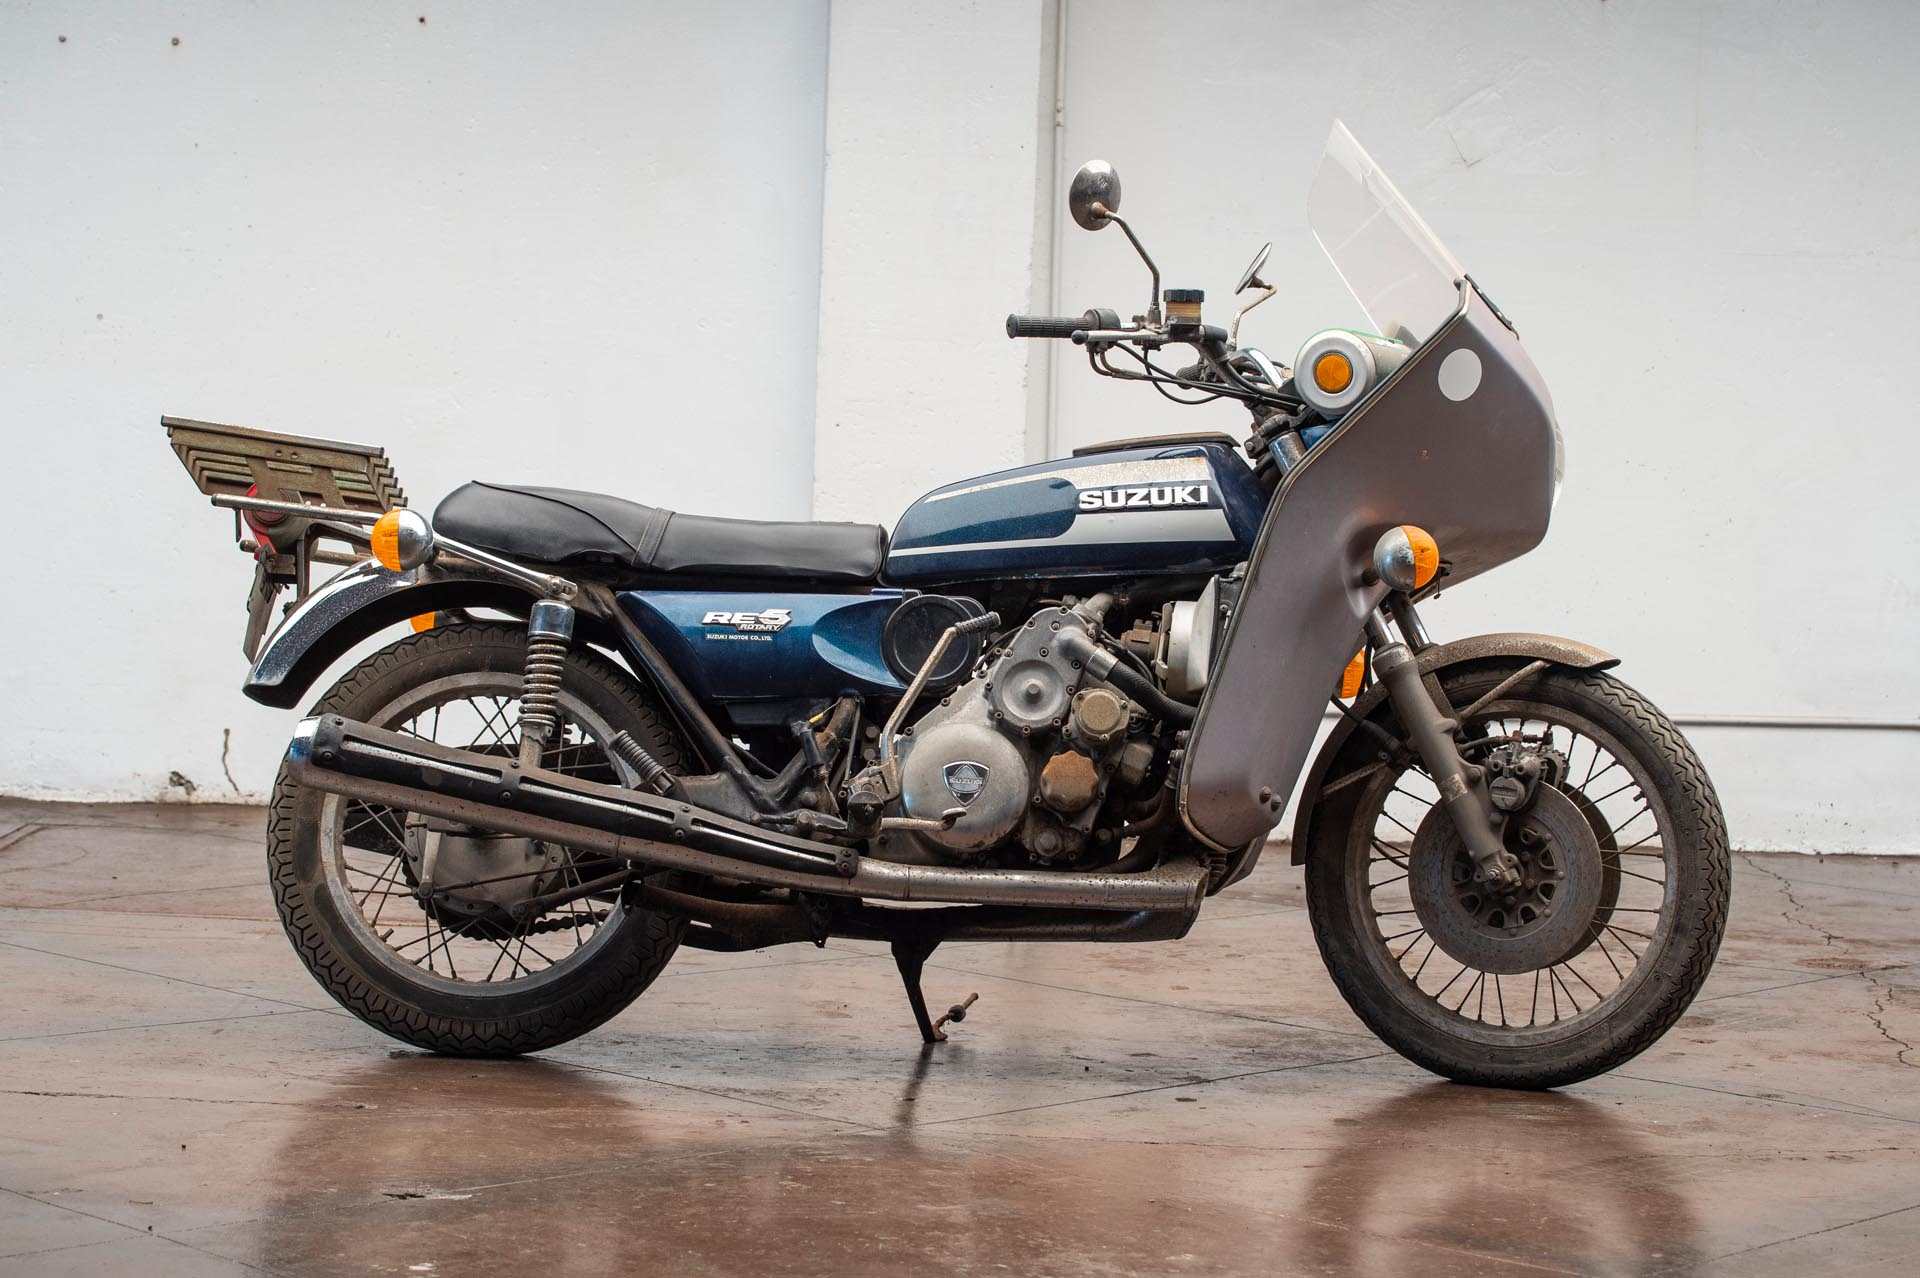 1974 Suzuki RE-5 Motorcycle